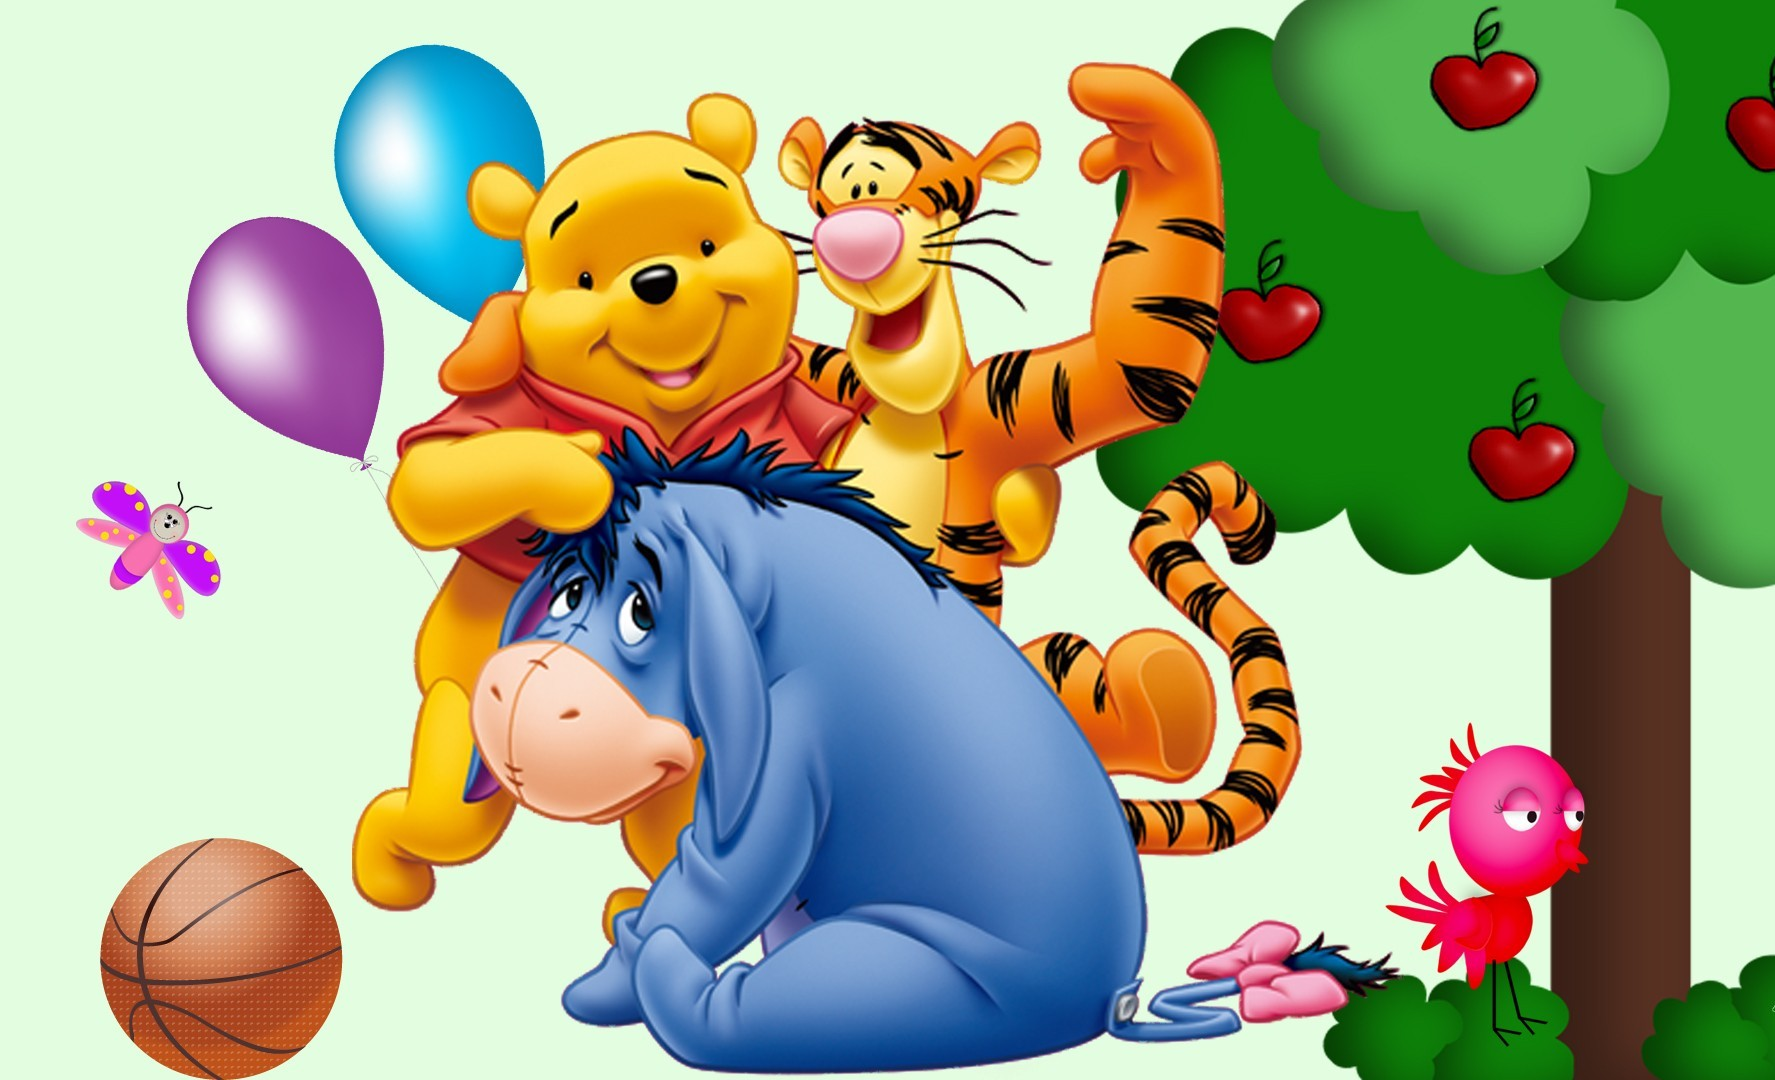 Piglet Wallpaper Iphone Tigger Amp Pooh Mickey Mouse Pictures